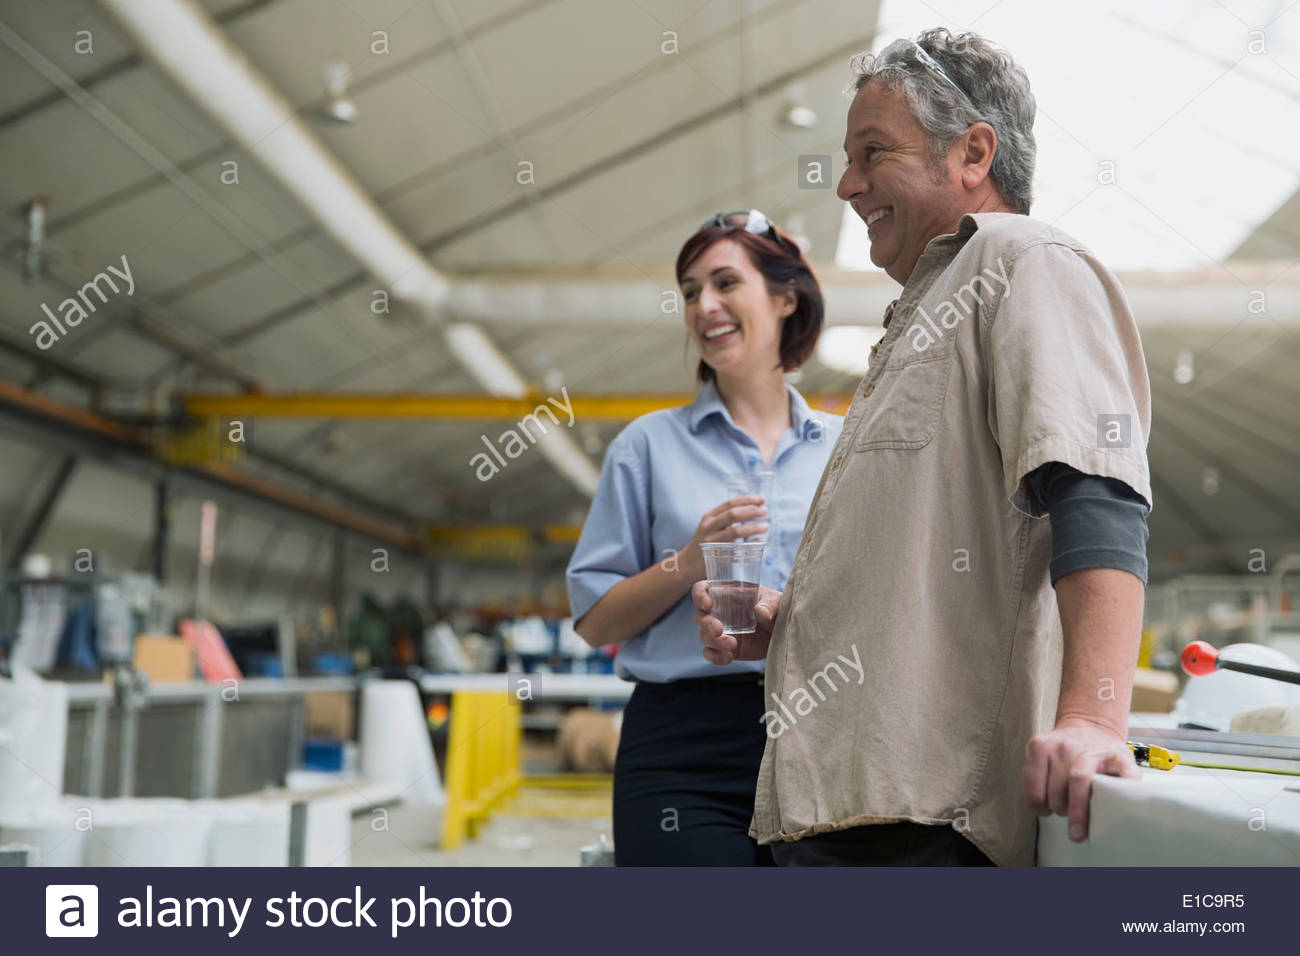 Workers talking in manufacturing plant - Stock Image